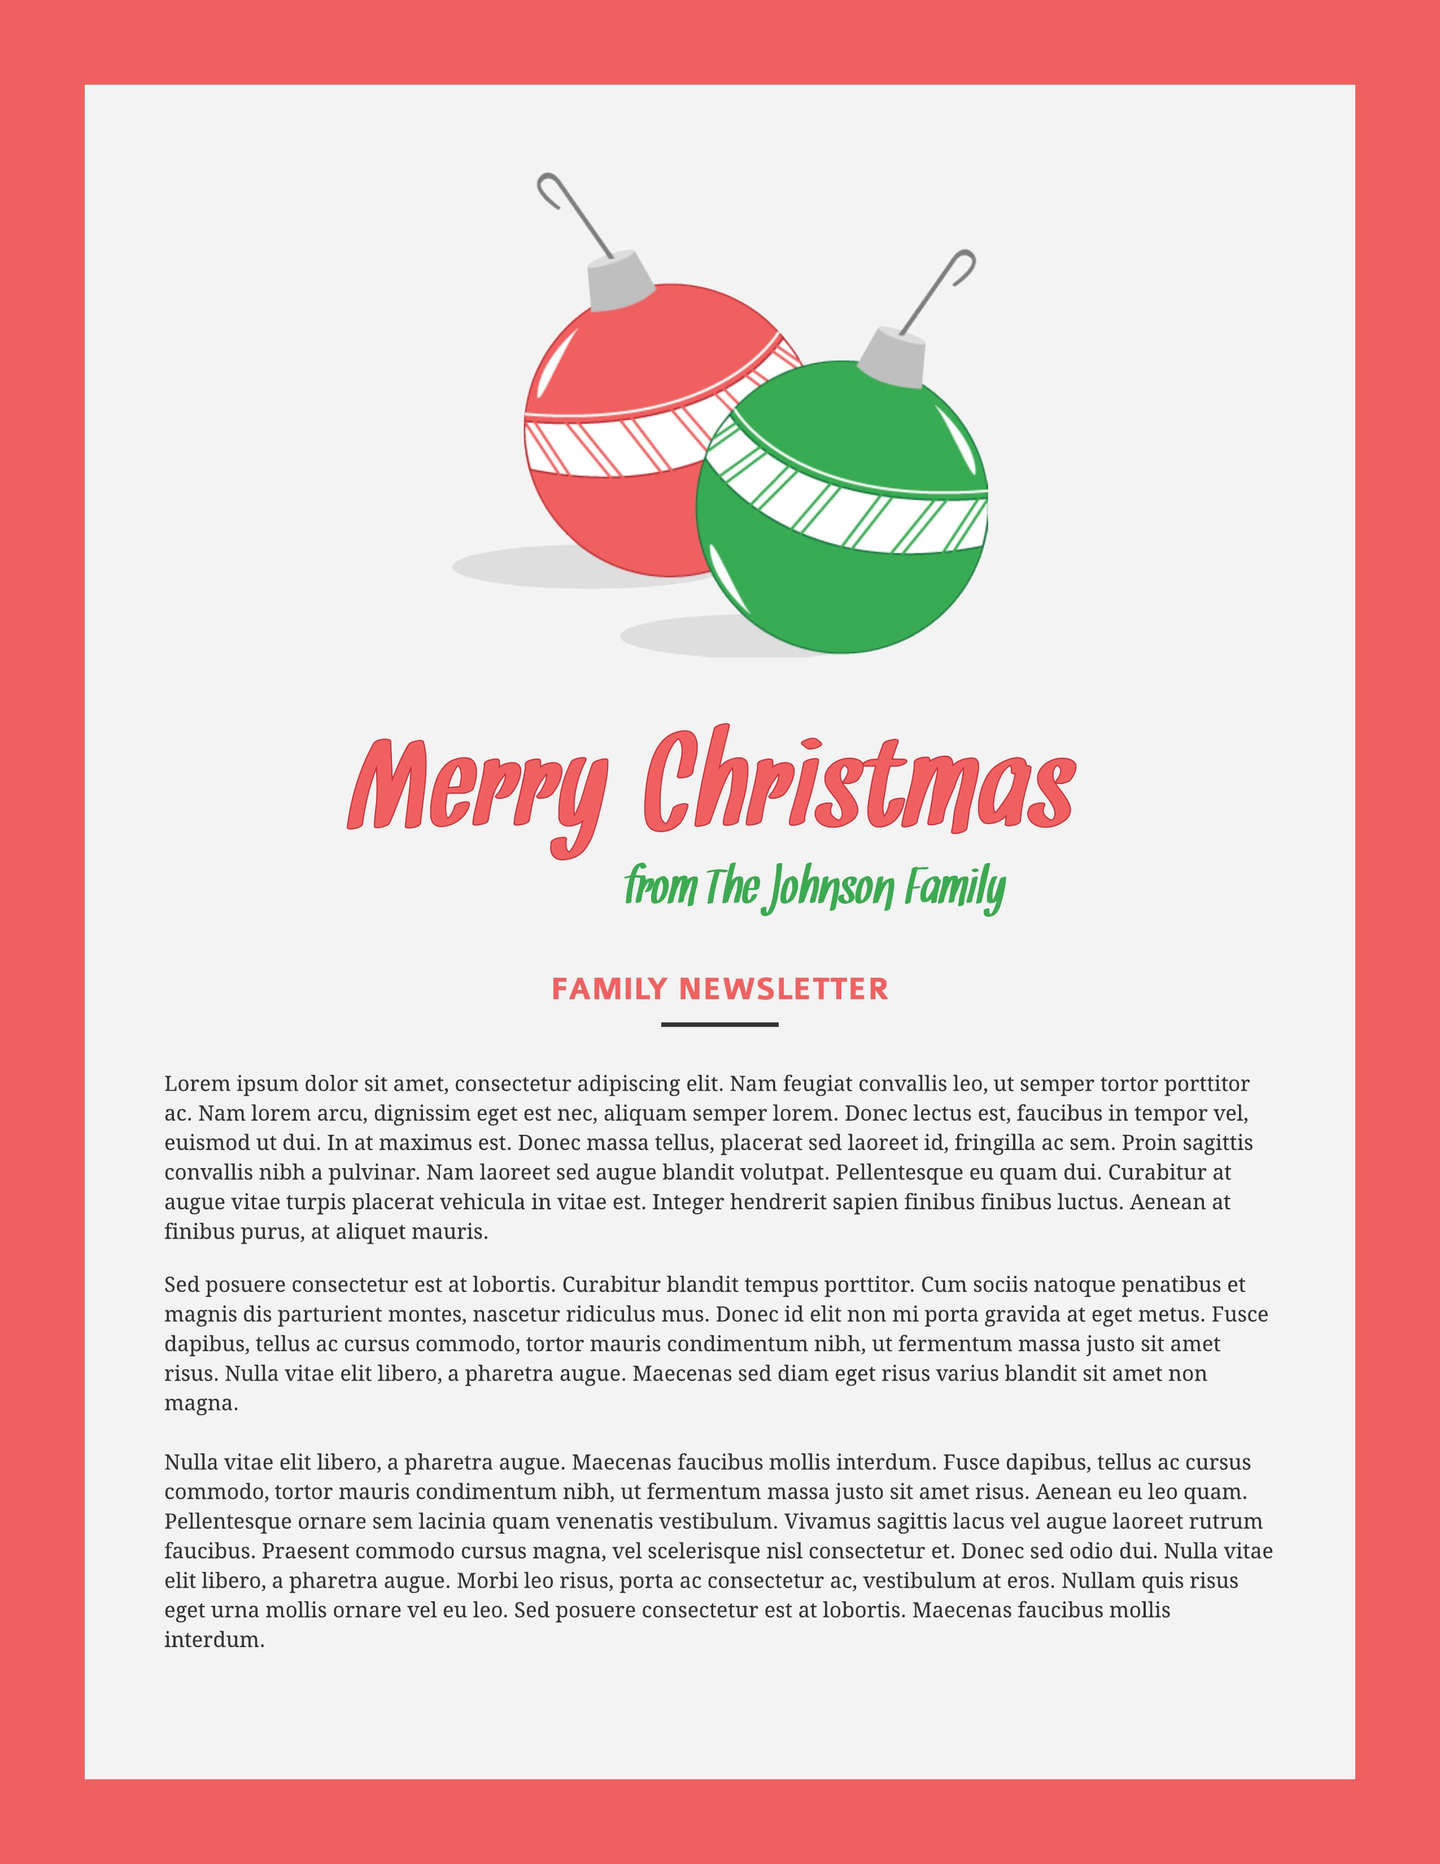 Christmas newsletters examples roho4senses christmas newsletters examples cheaphphosting Images